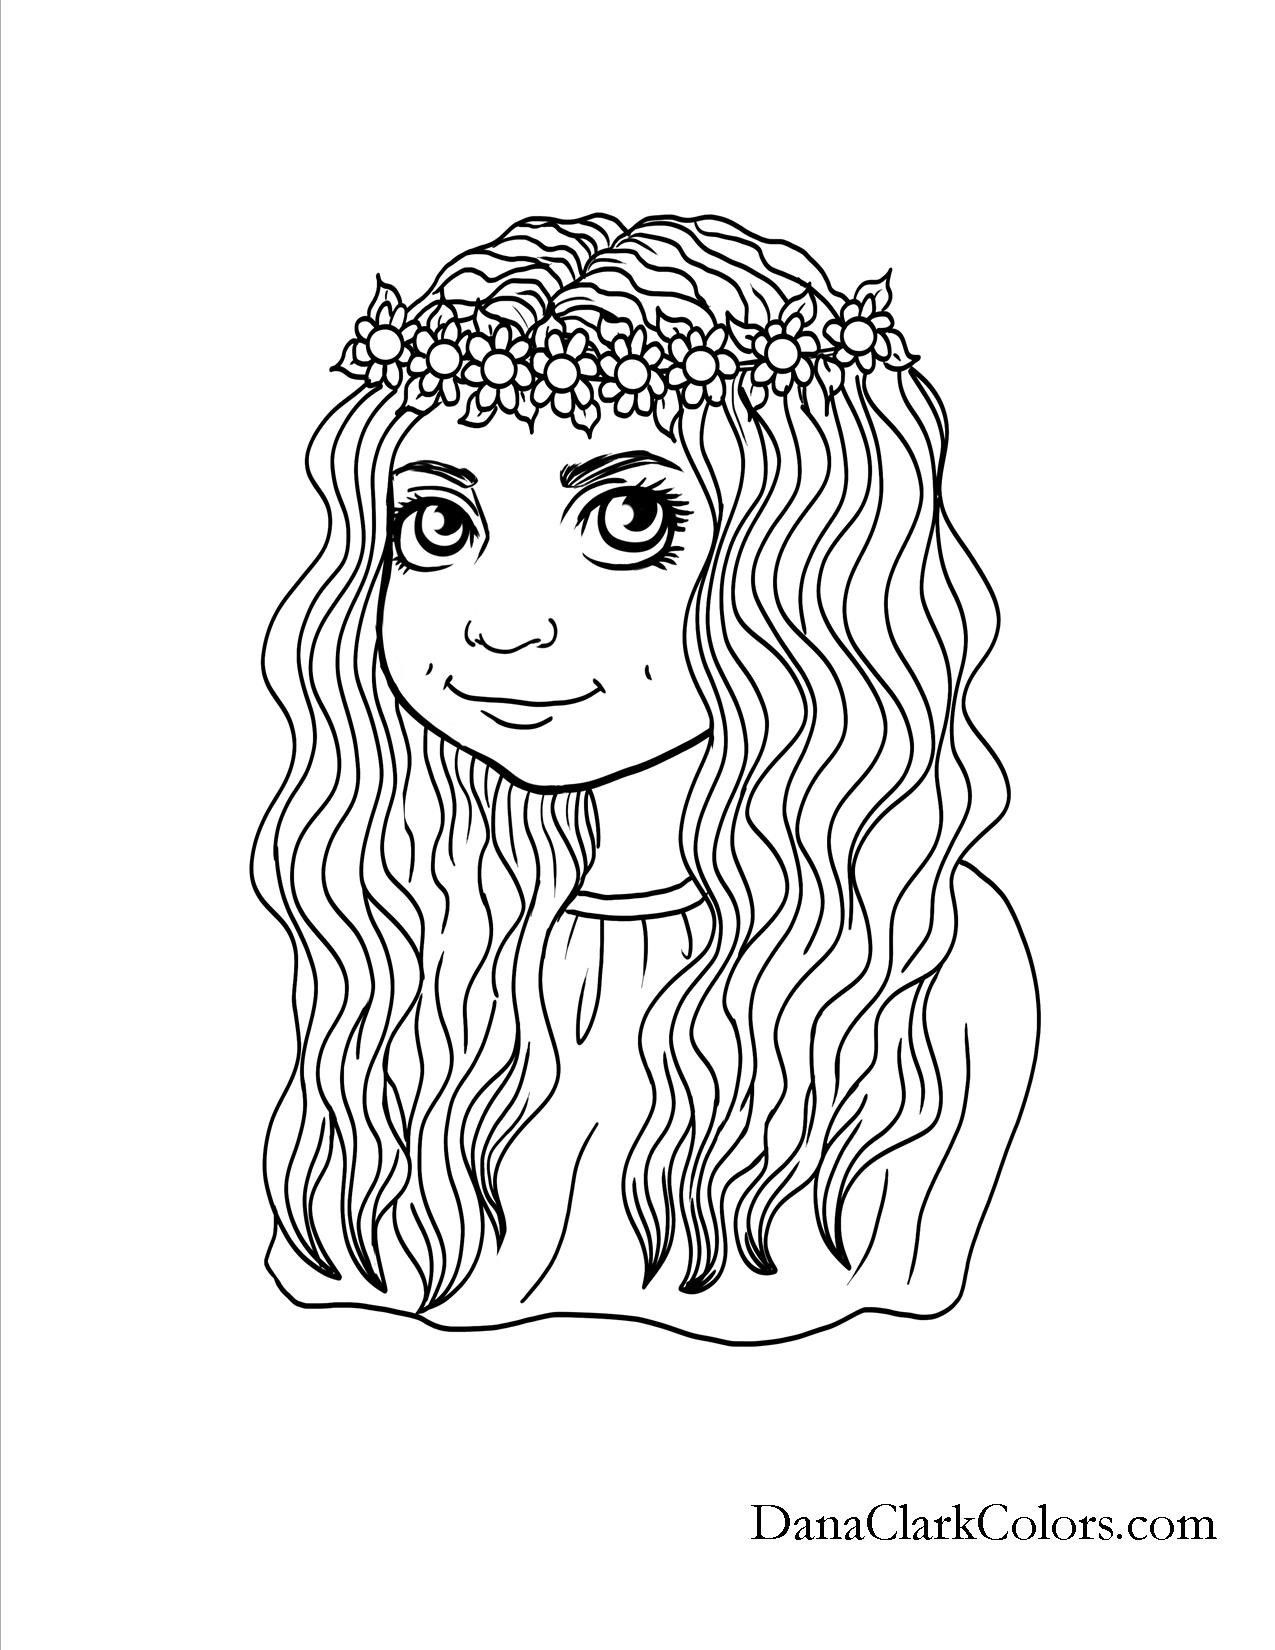 Hairstyle Coloring Pages New Hairstyles Coloring Pages Fresh Hairstyle 0